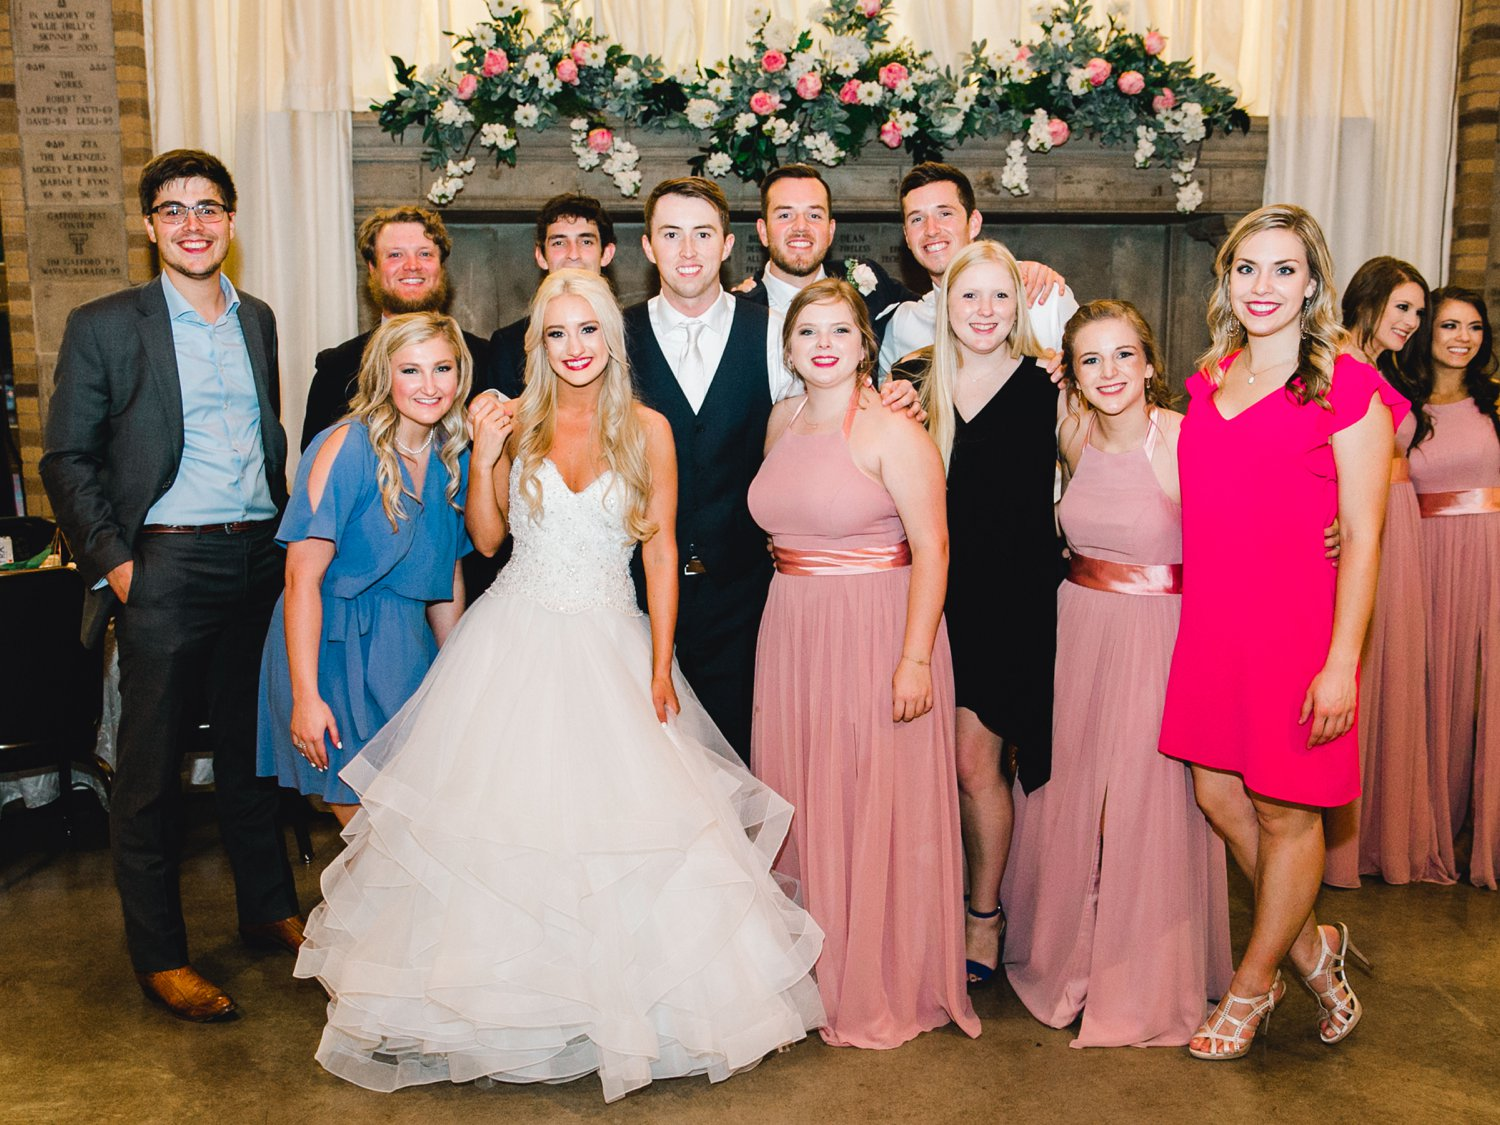 MADI_AND_WILL_STEPHENS_ALLEEJ_LUBBOCK_PHOTOGRAPHER_TEXAS+TECH+FRAZIER_ALUMNI0188.jpg